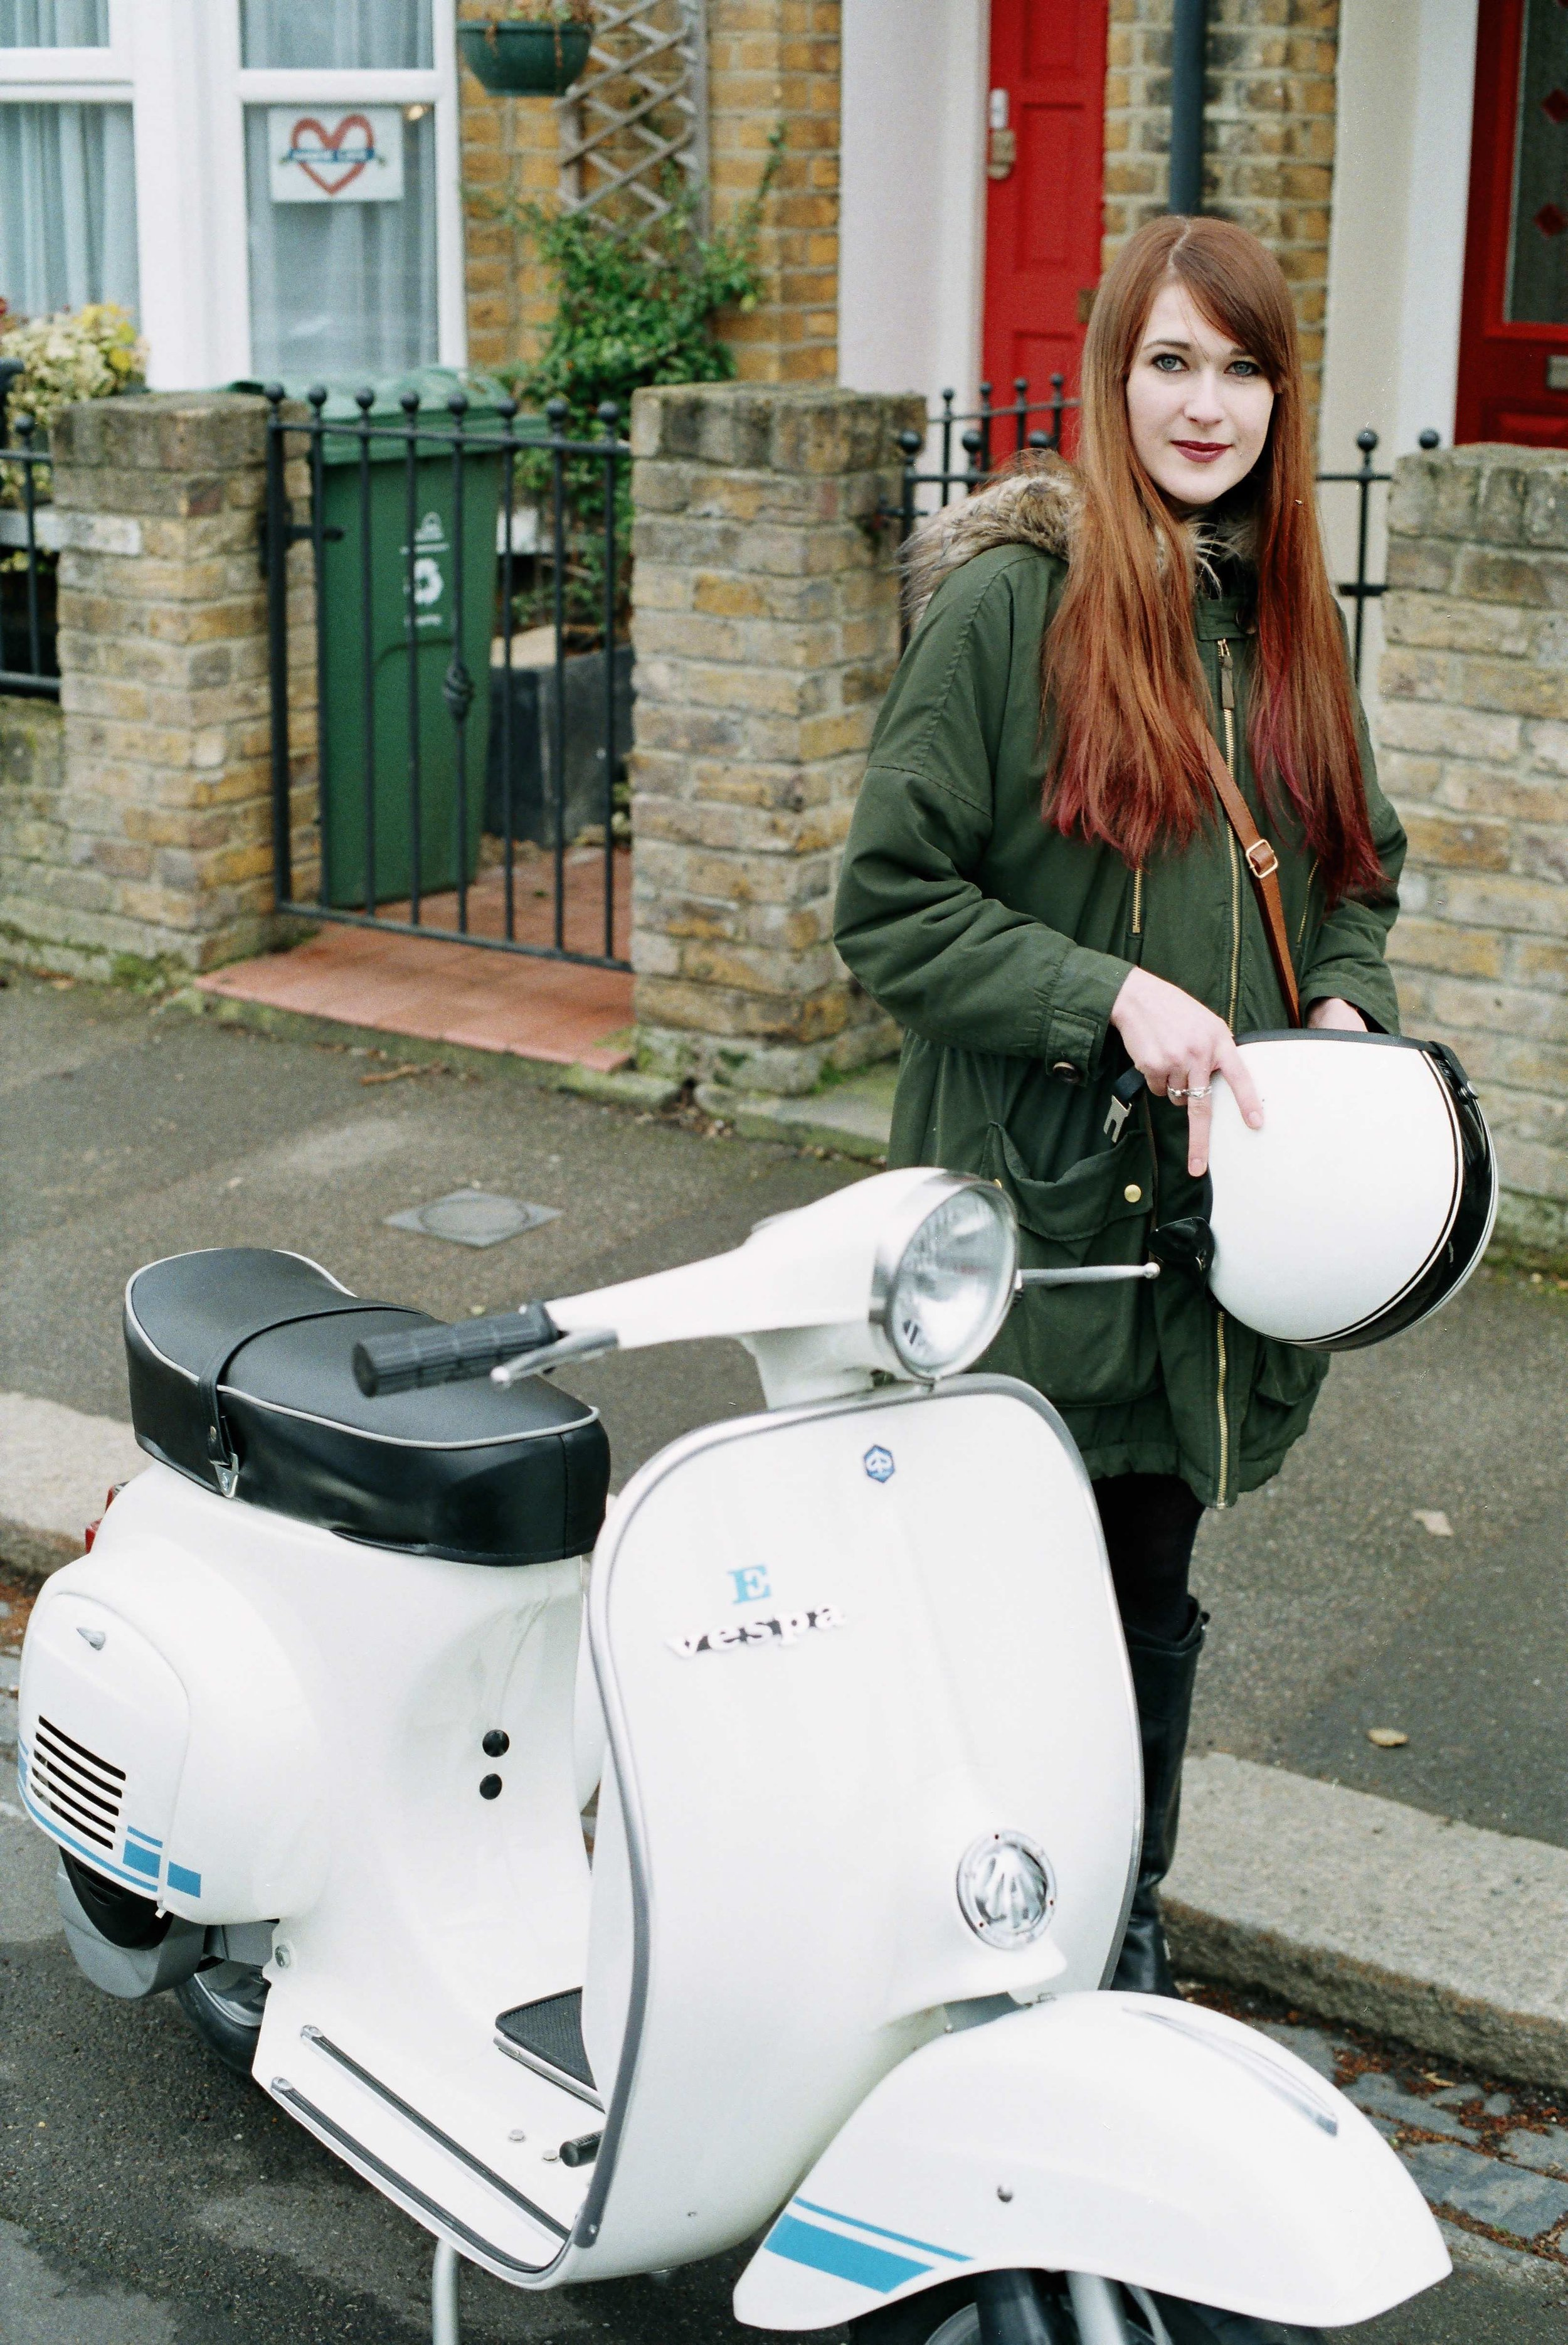 PROJECT:E scooter, March 2018 - photo by Paul Hart